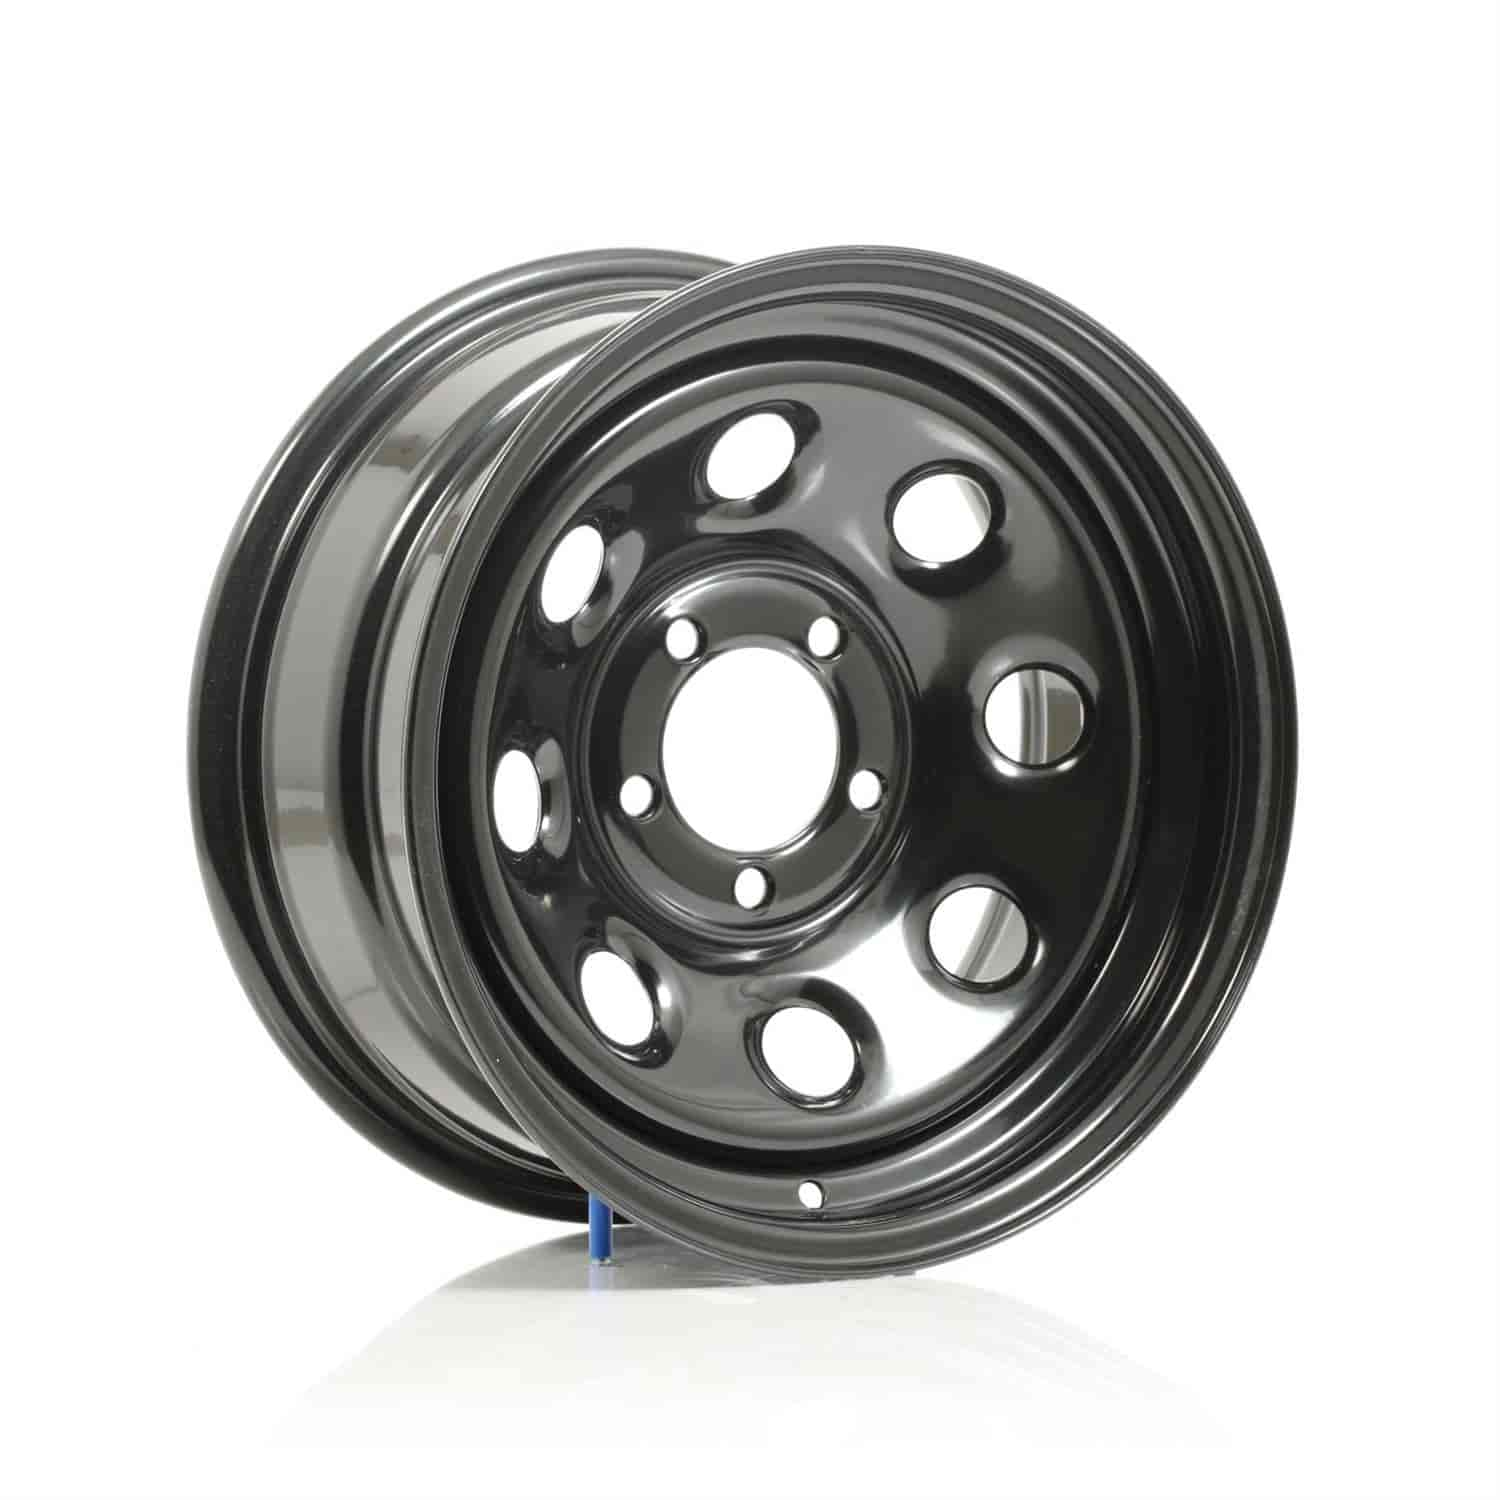 Cragar 3977880 - Cragar Black Soft 8 Wheels